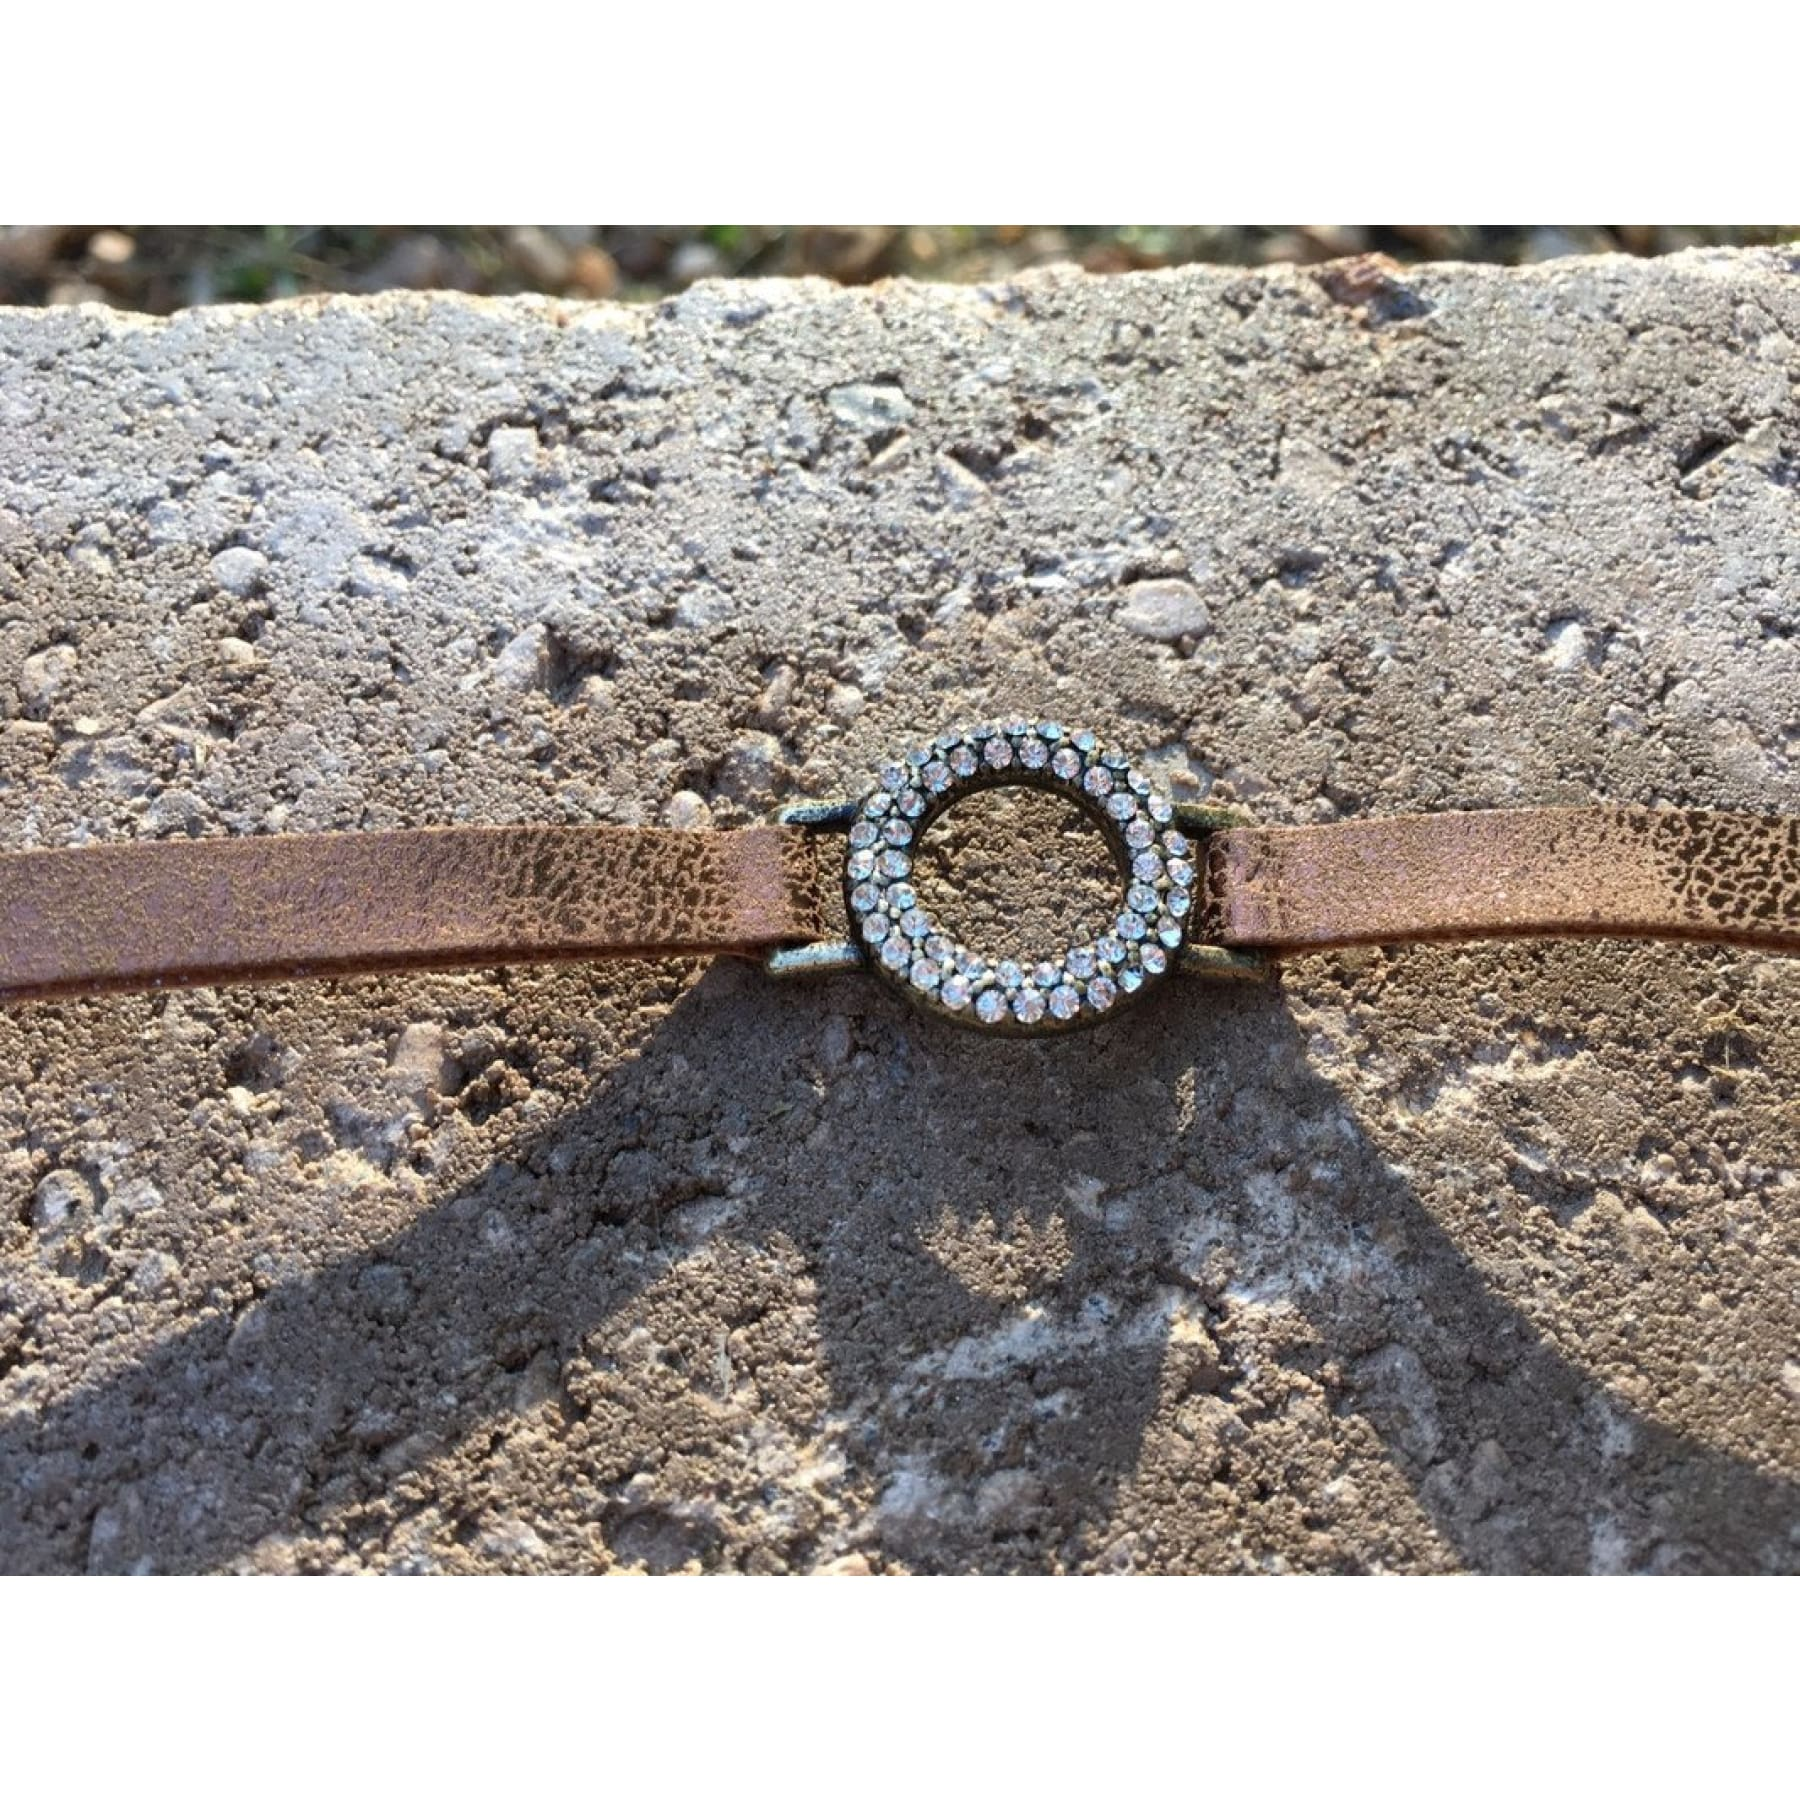 Small Circle of Life Crystal and Leather Cuff,Bracelet - Dirt Road Divas Boutique